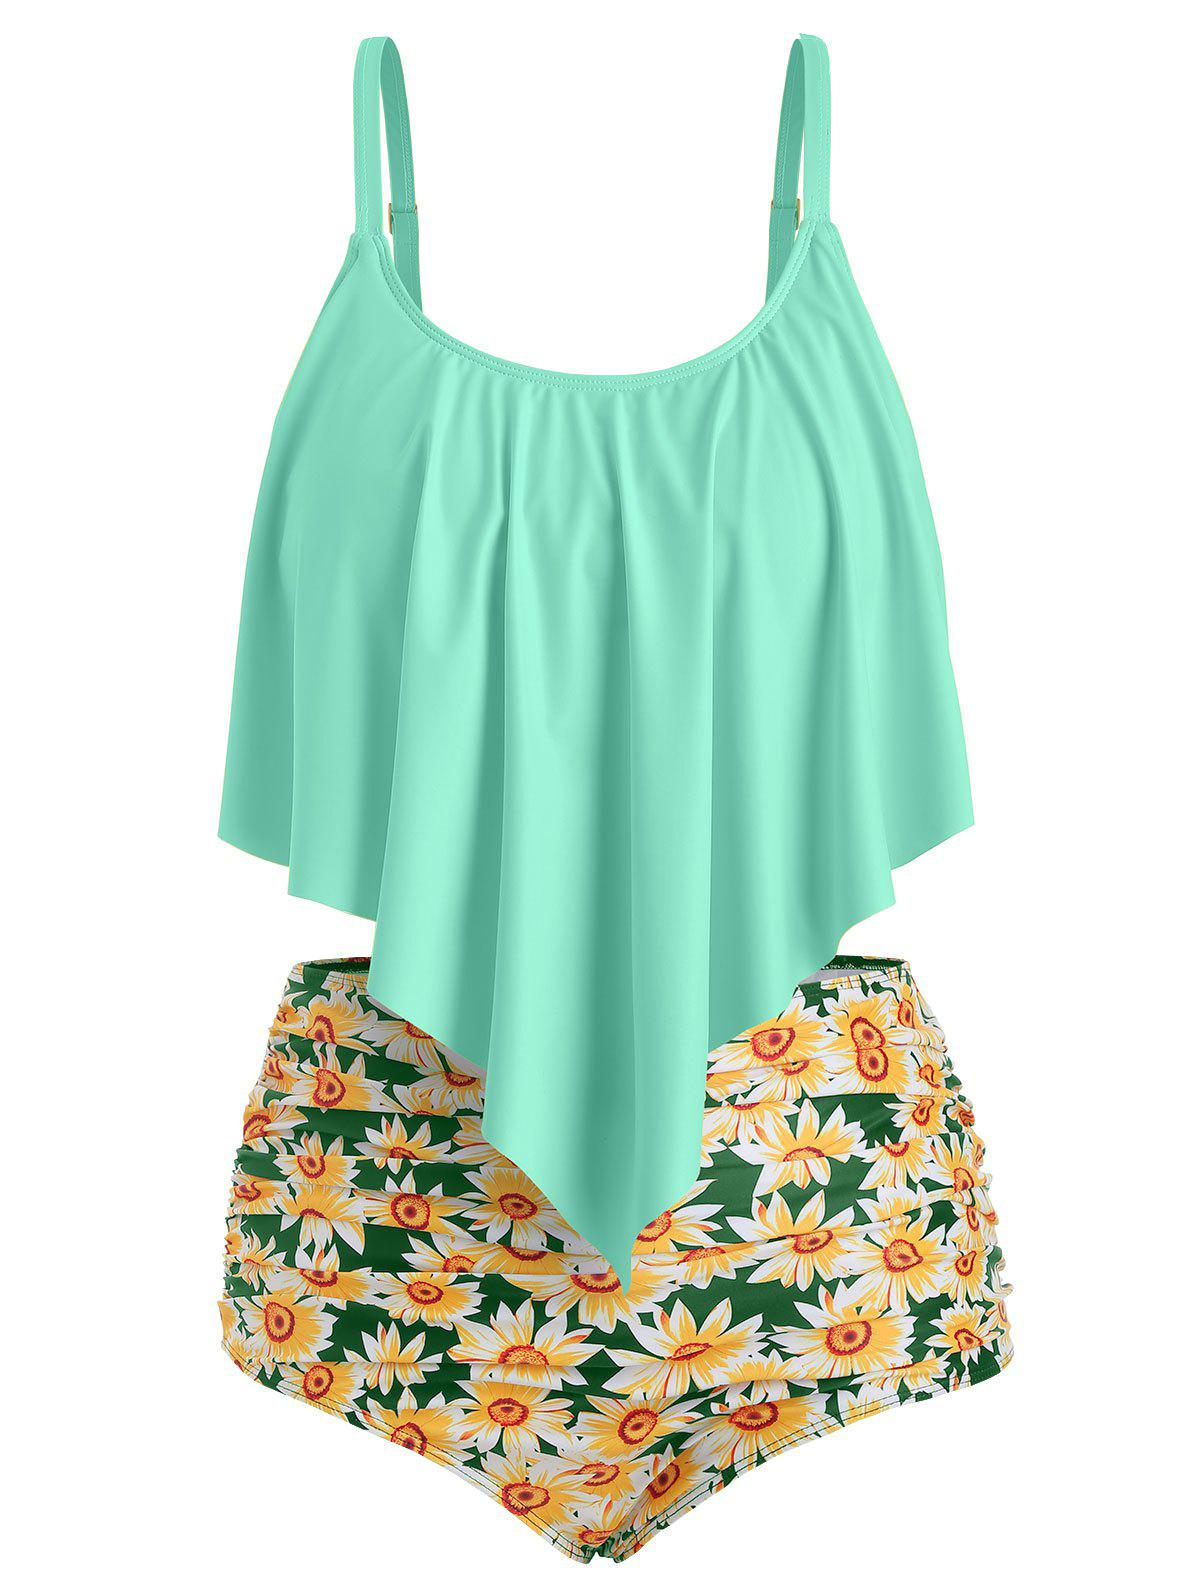 Plus Size Ruffled Sunflower Print Bikini Set - AQUAMARINE 3X